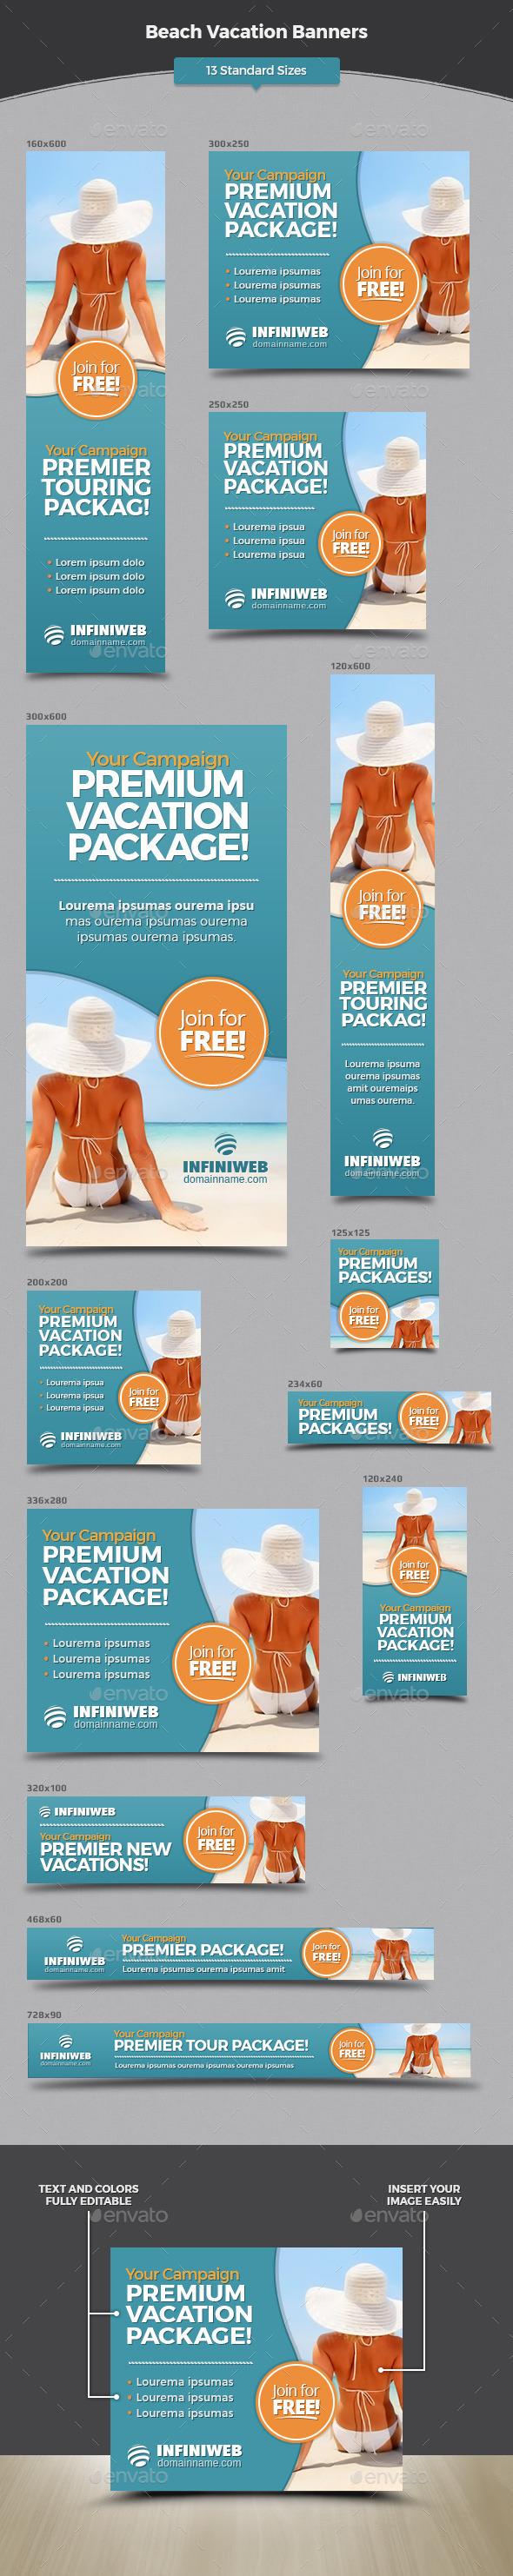 Beach Vacation Banners - Banners & Ads Web Elements